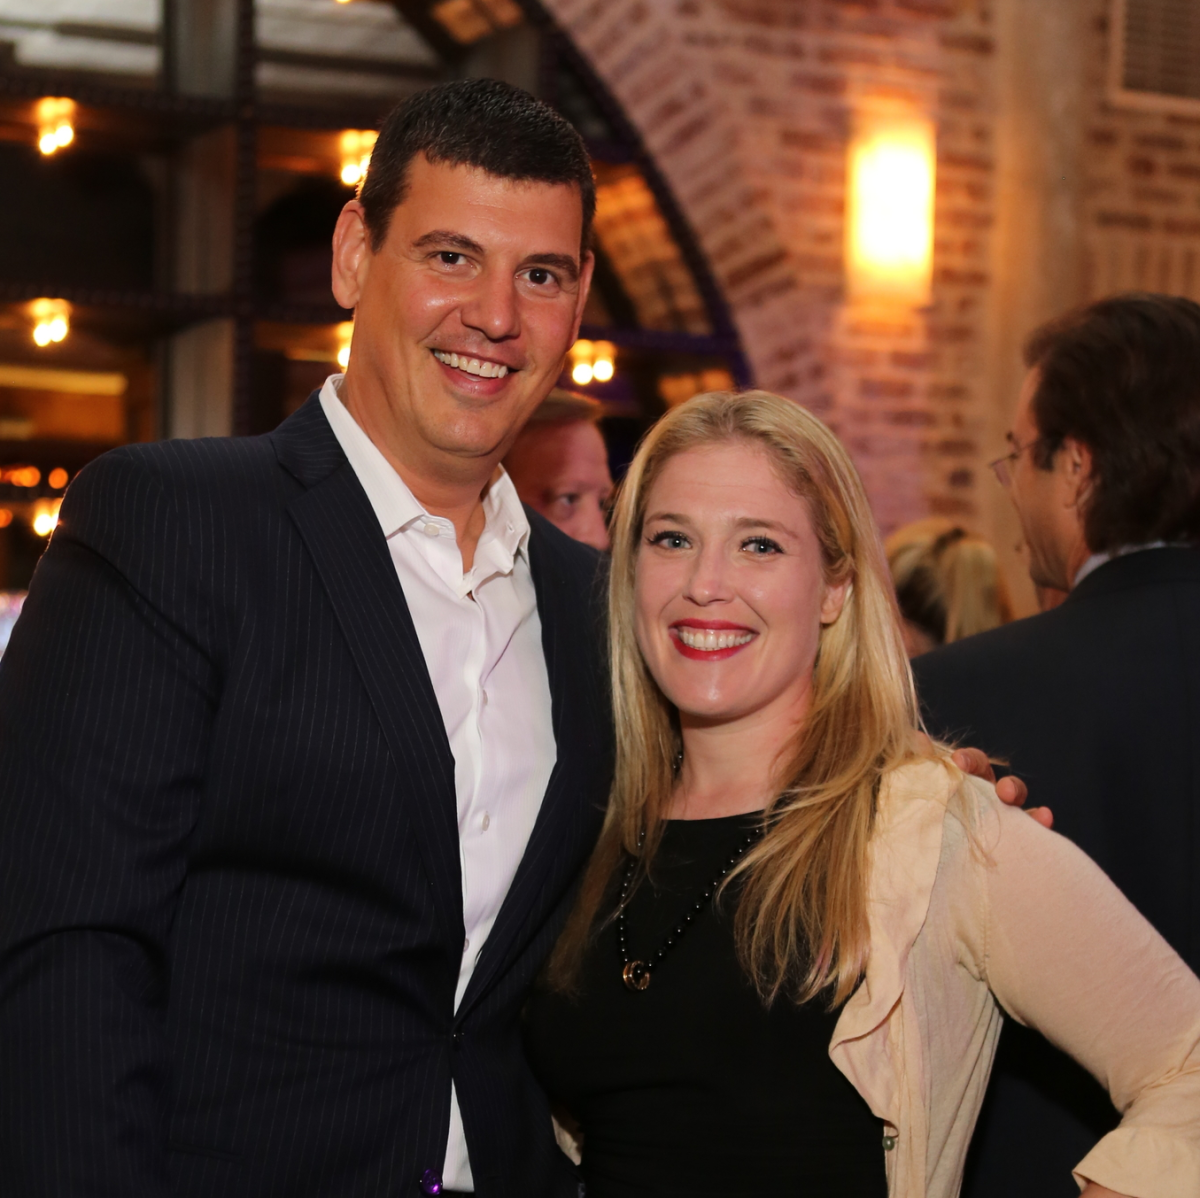 News, Shelby, Catwalk for a Cure, Nov. 2015, Mark Janda, Jennifer Roosth